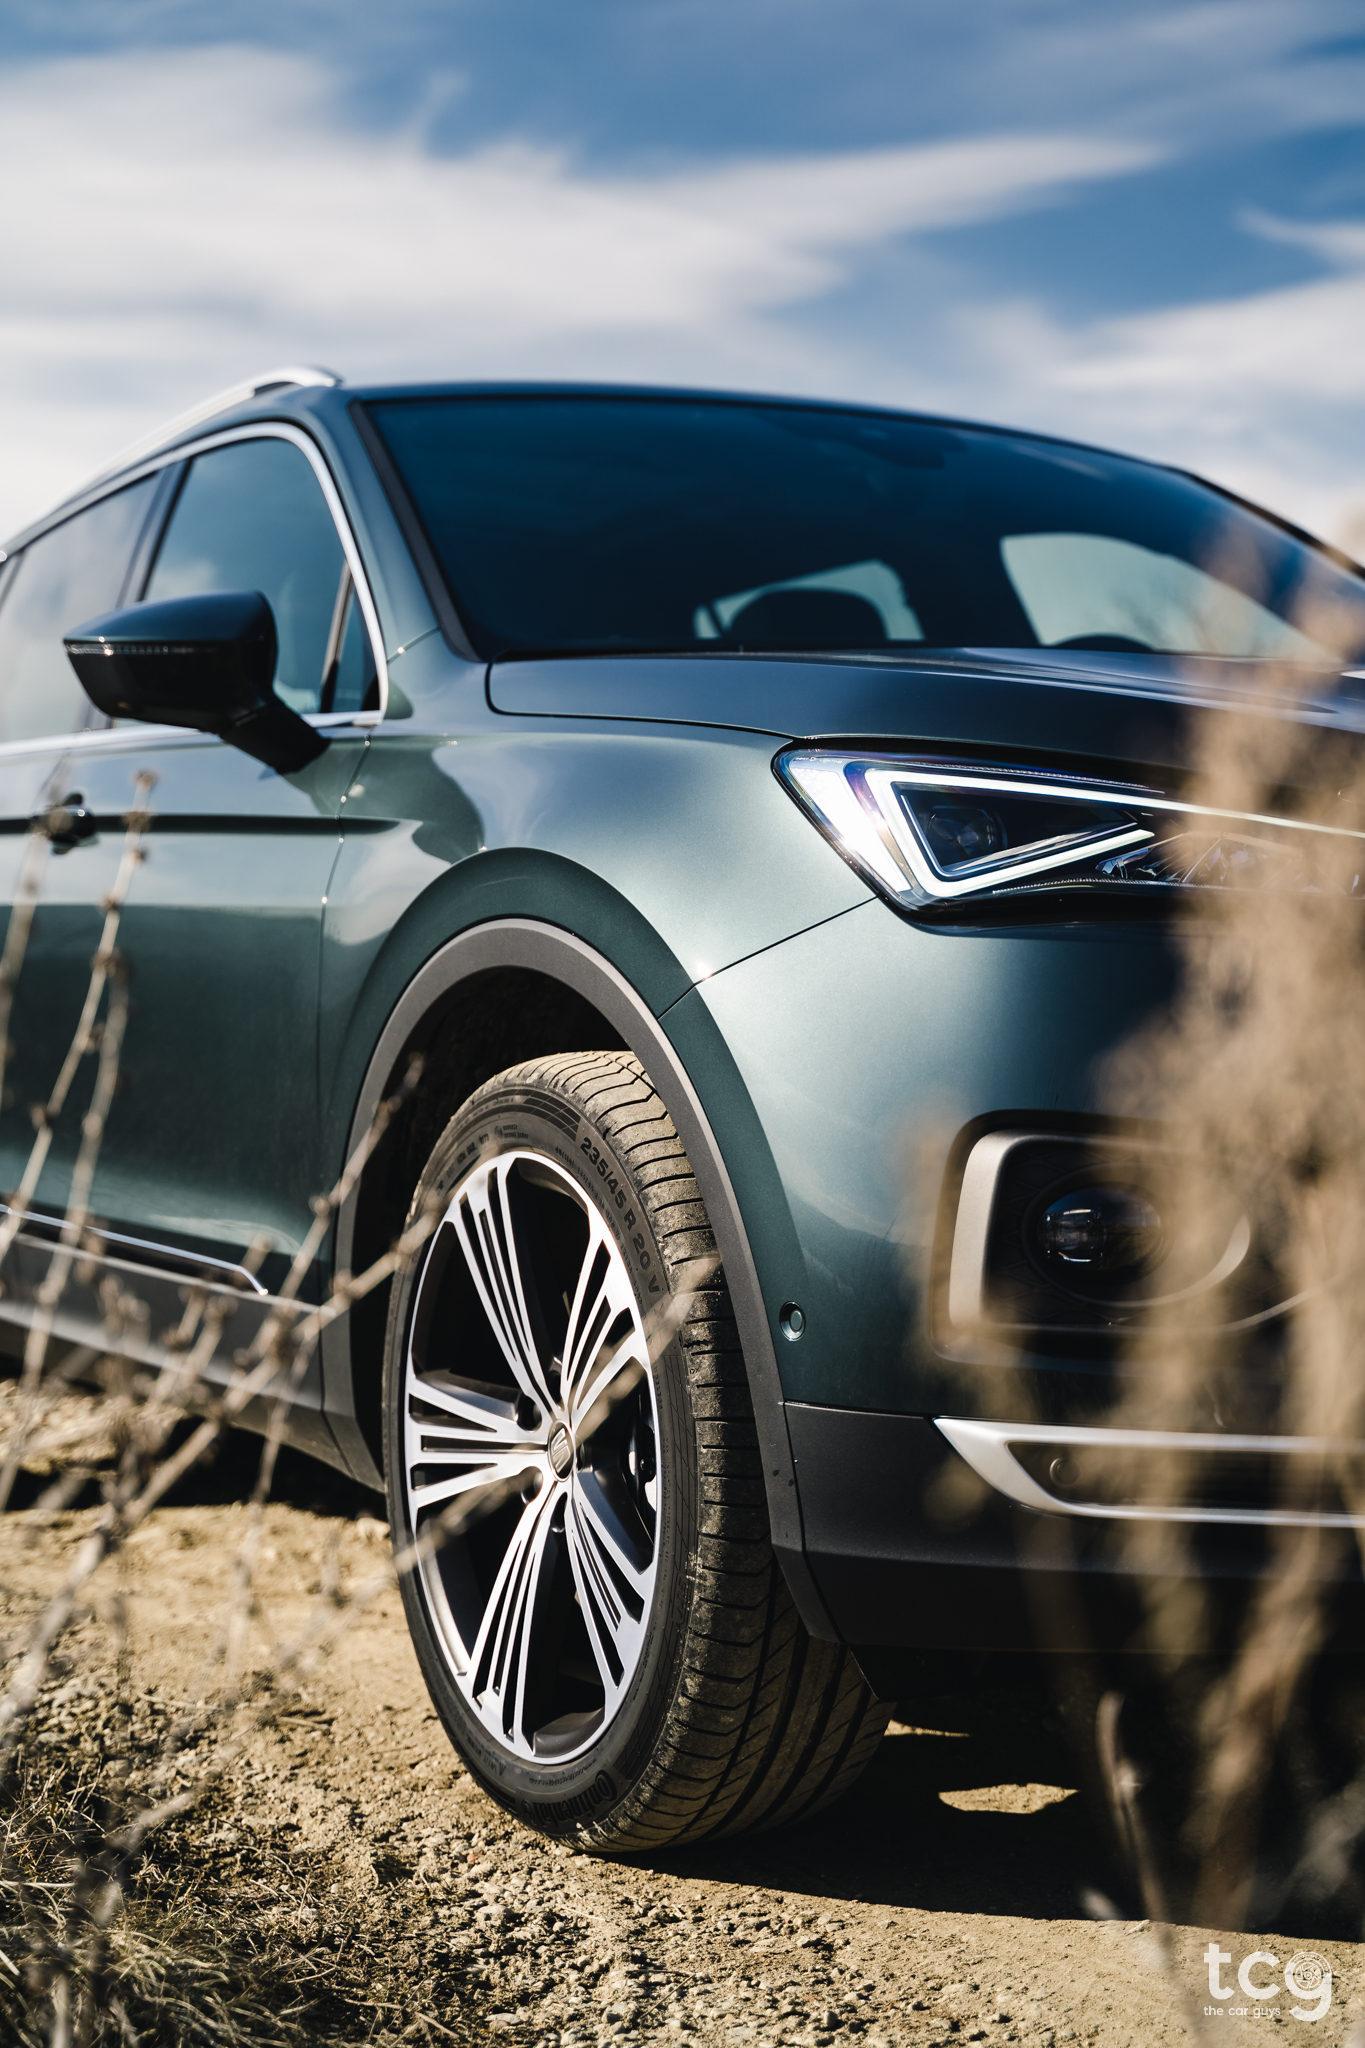 Seat Tarraco - A 7-seater with style!